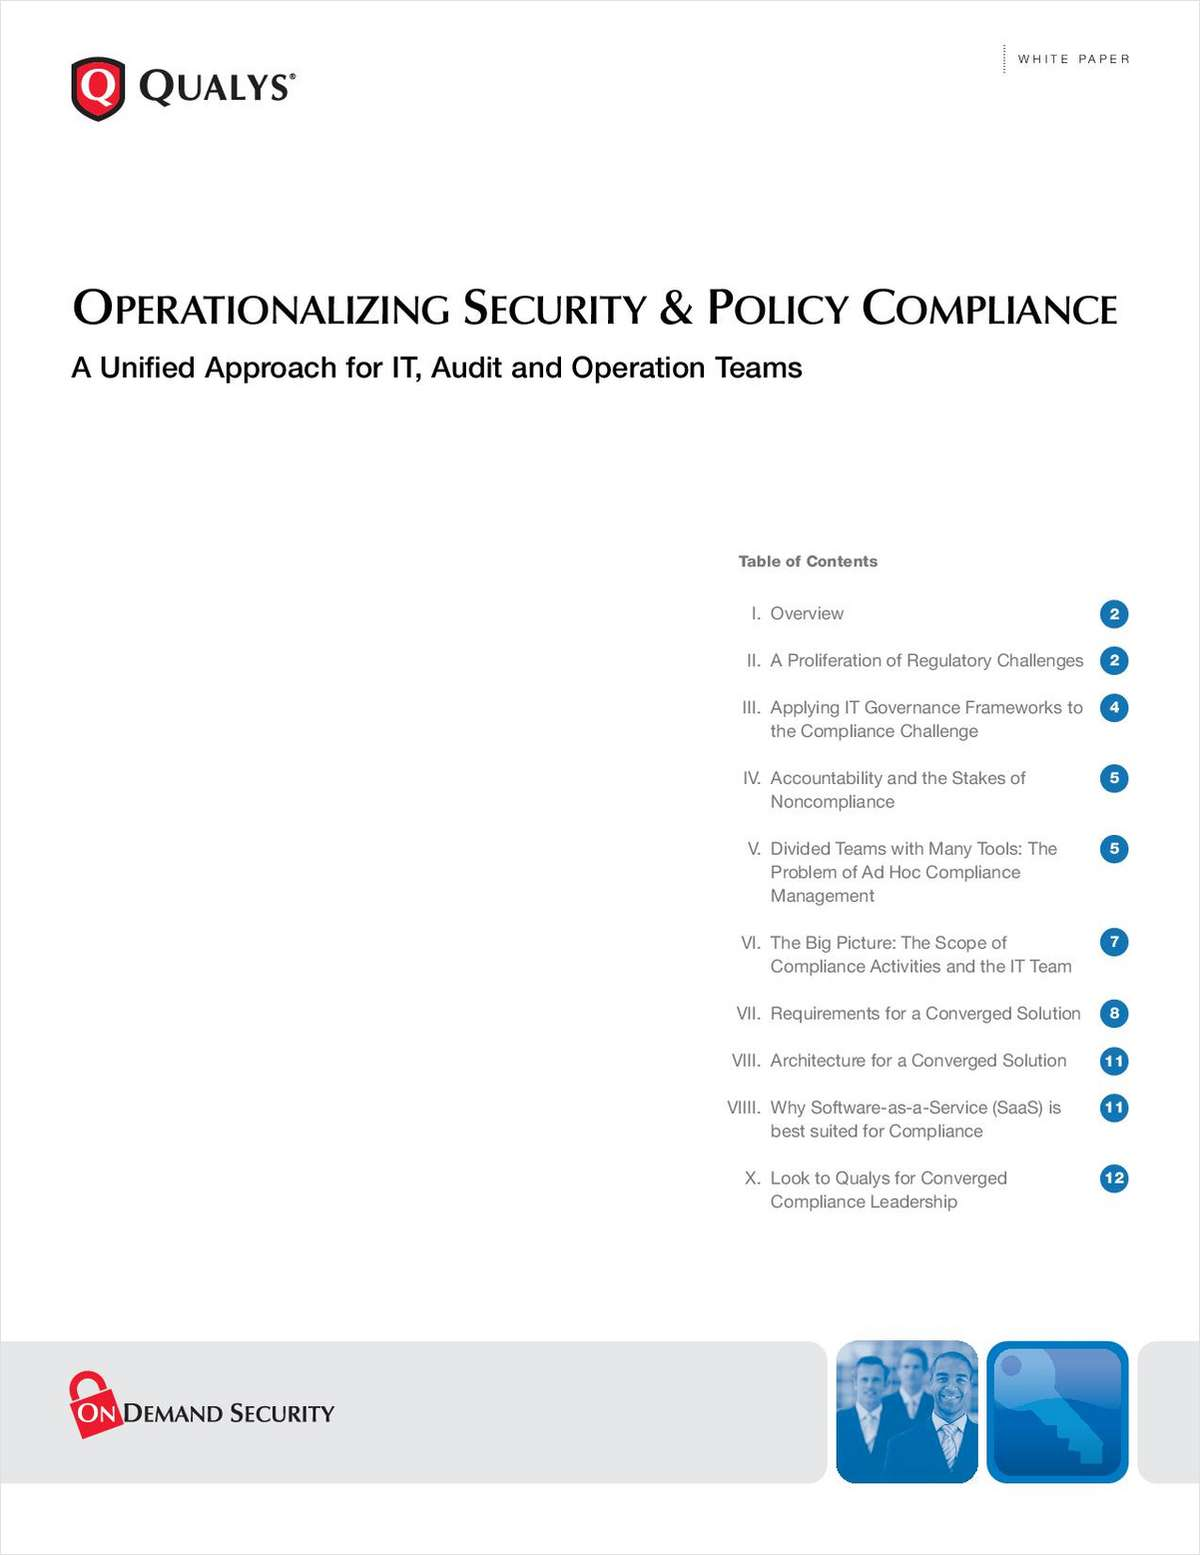 Operationalizing Security & Policy Compliance: A Unified Approach for IT, Audit and Operation Teams